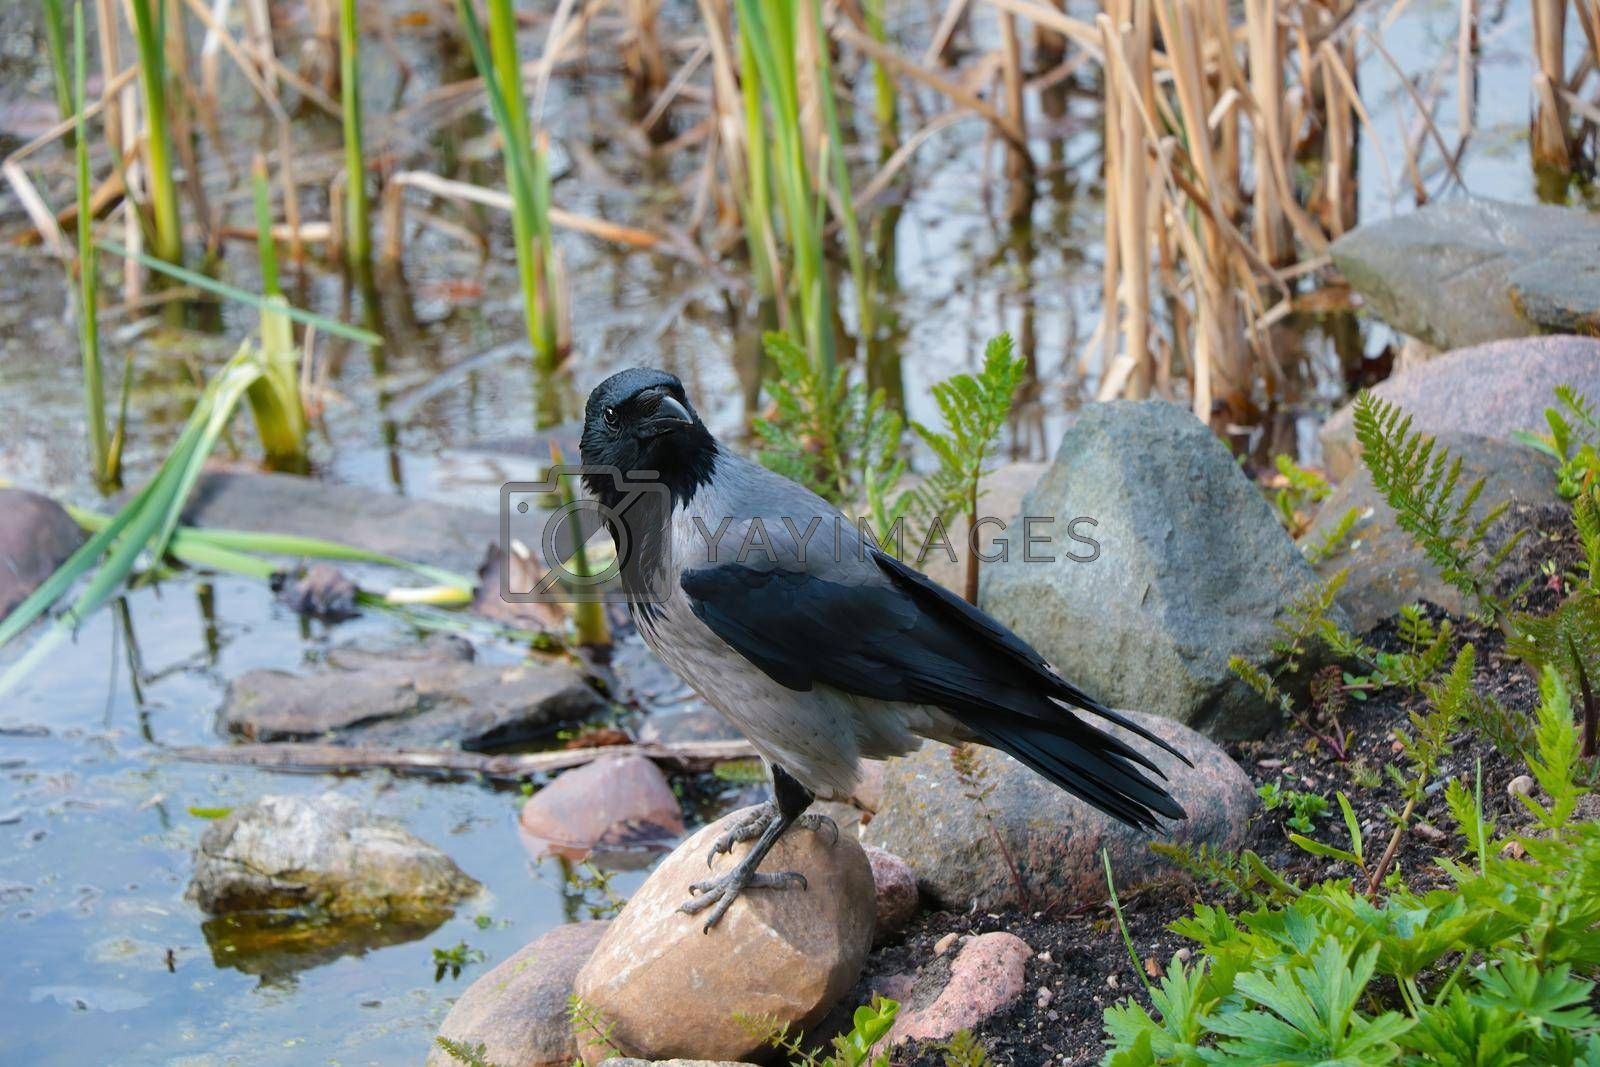 Royalty free image of Close-up of a black crow standing on a stone. by kip02kas